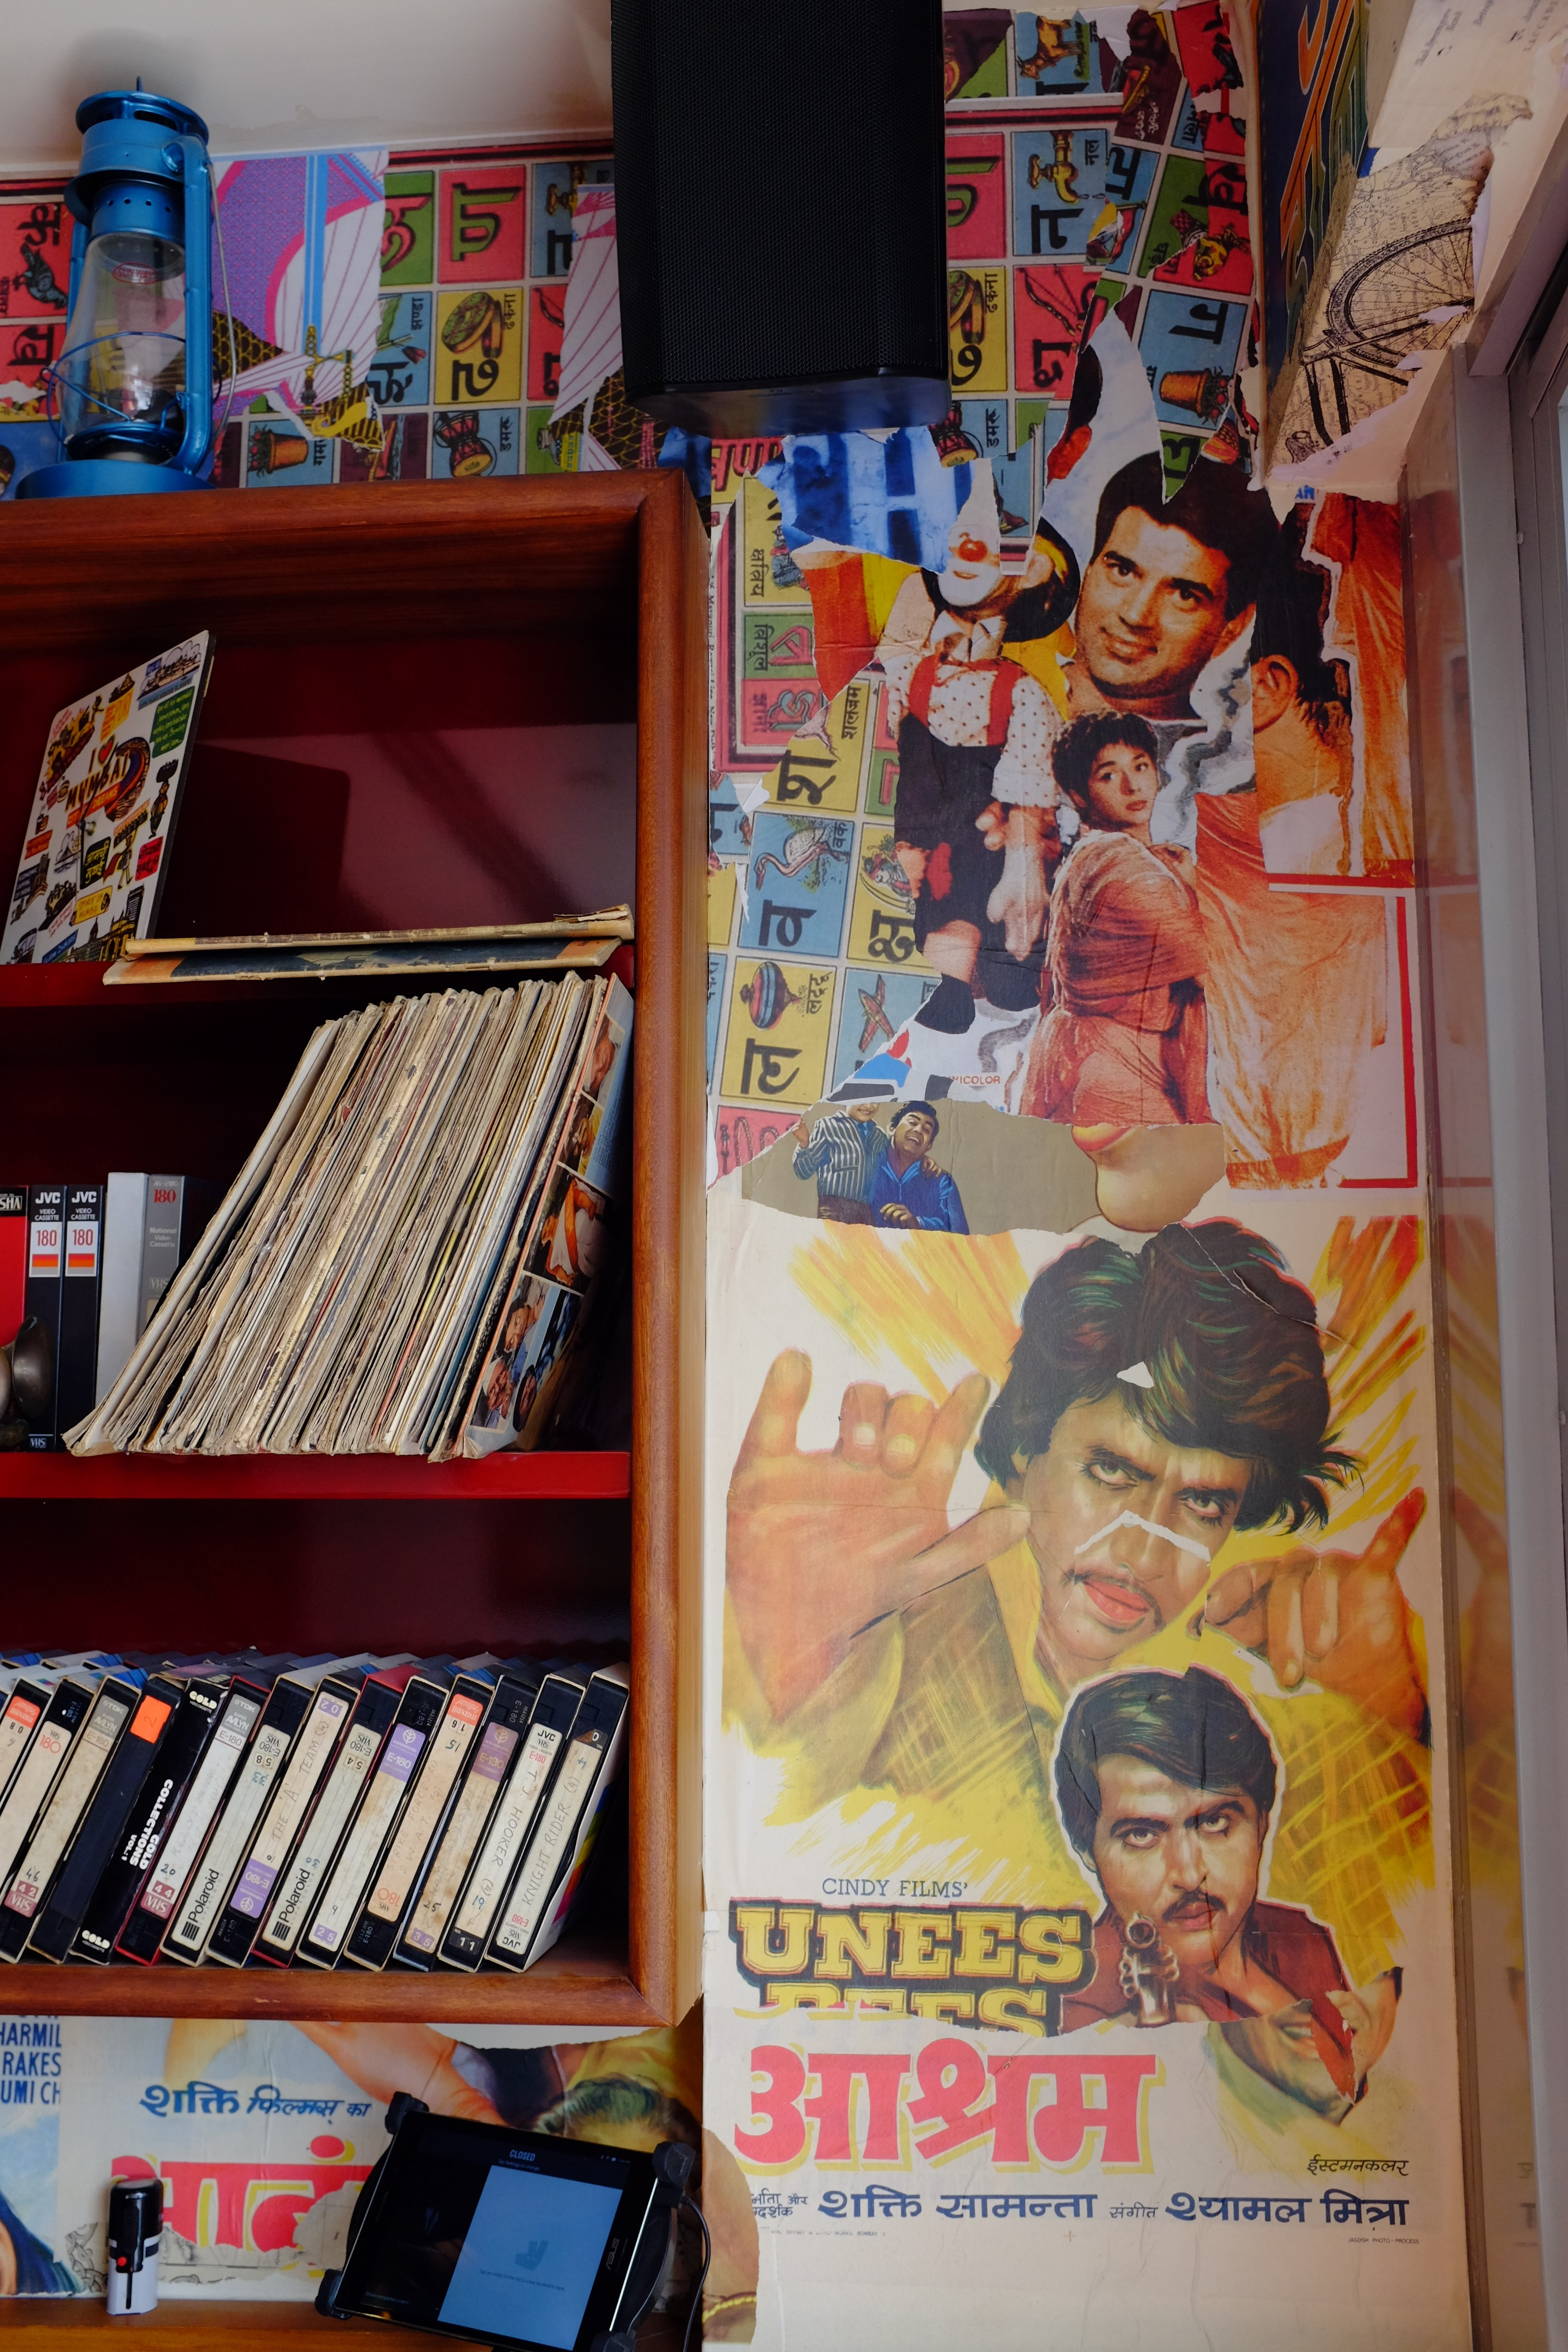 Moombai & Co., Nostalgic India in Dubai weekenduae